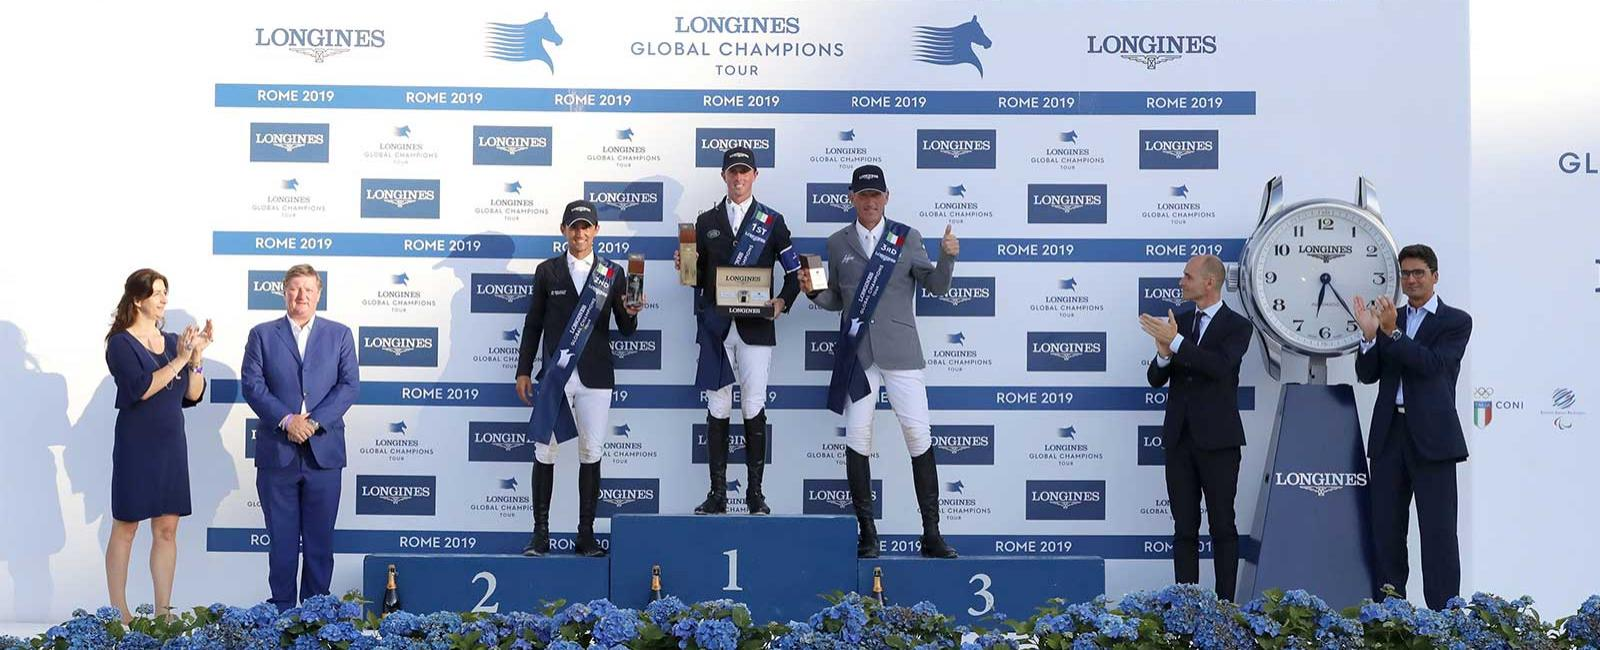 Longines Global Champions Tour of Rome; Jumping; 2019